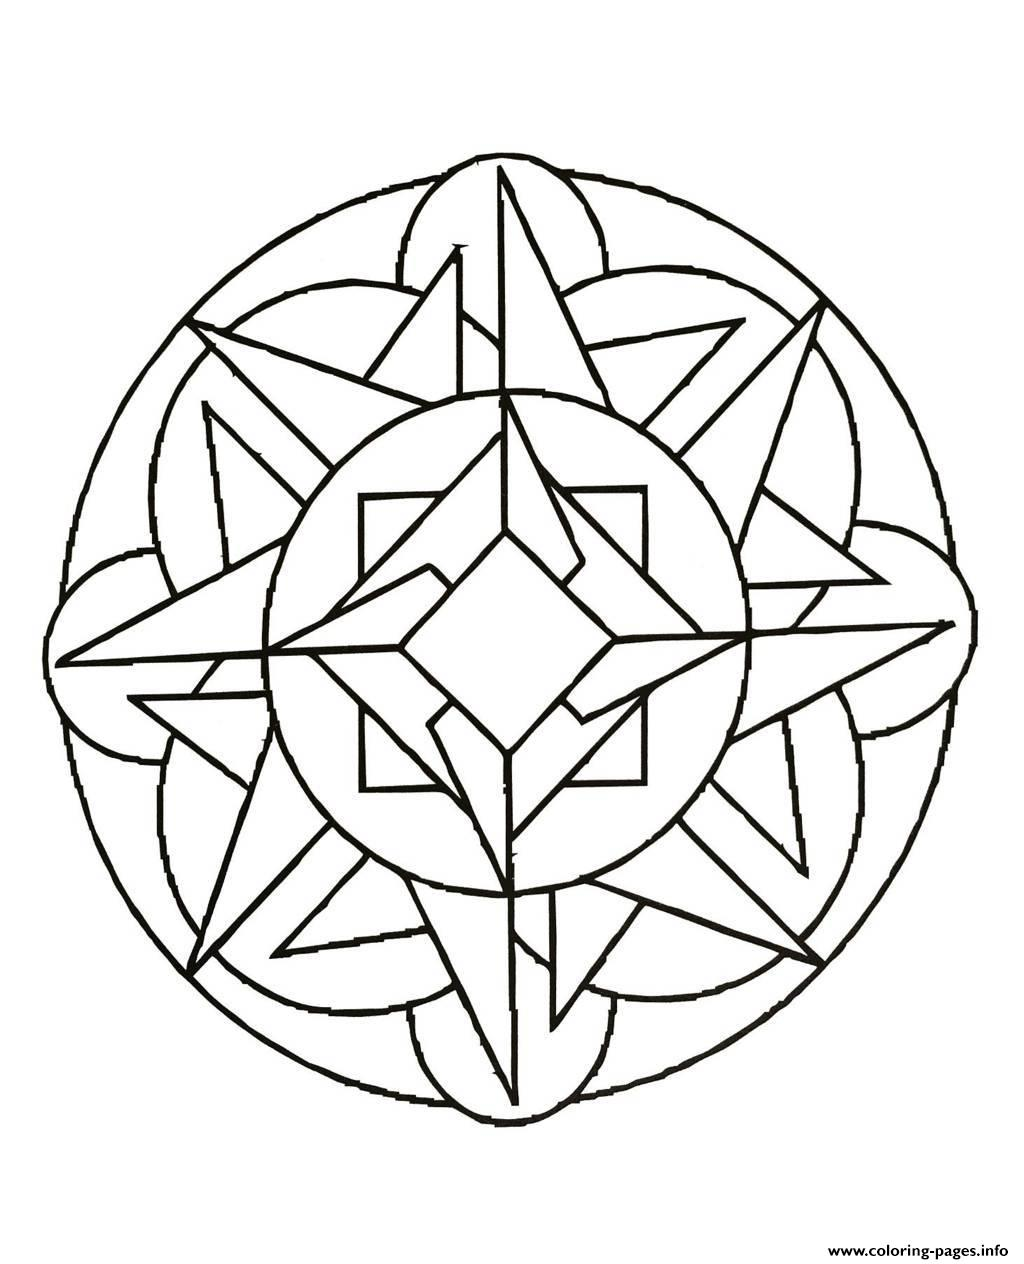 Mandalas To Download For Free 23  coloring pages